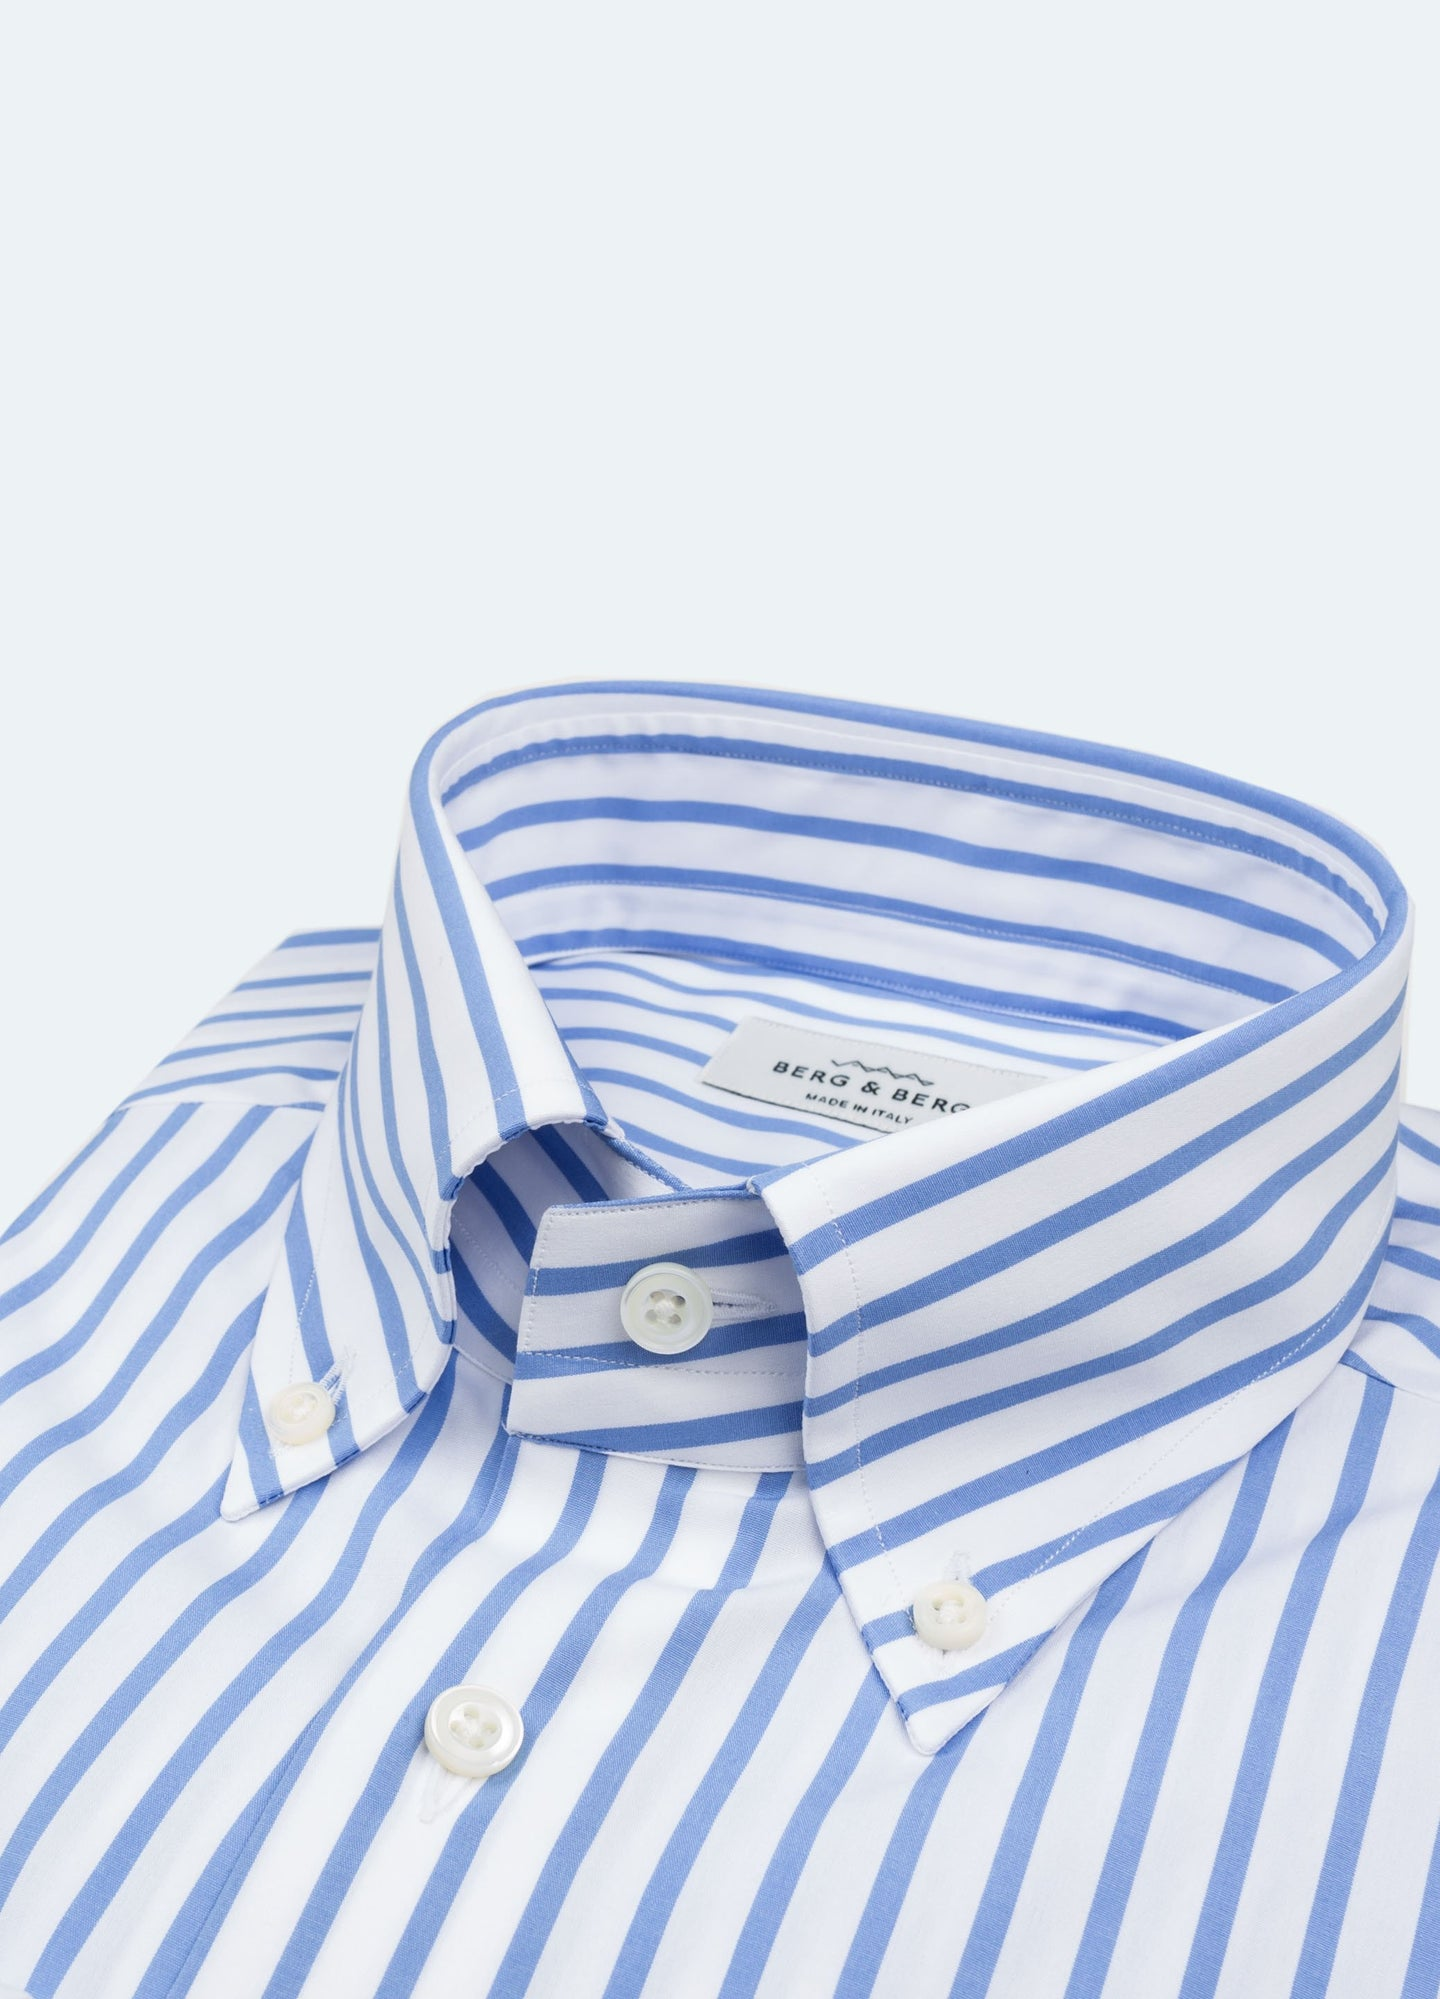 77107121 Filip II Striped Button Down Shirt - Blue/White – Berg&Berg